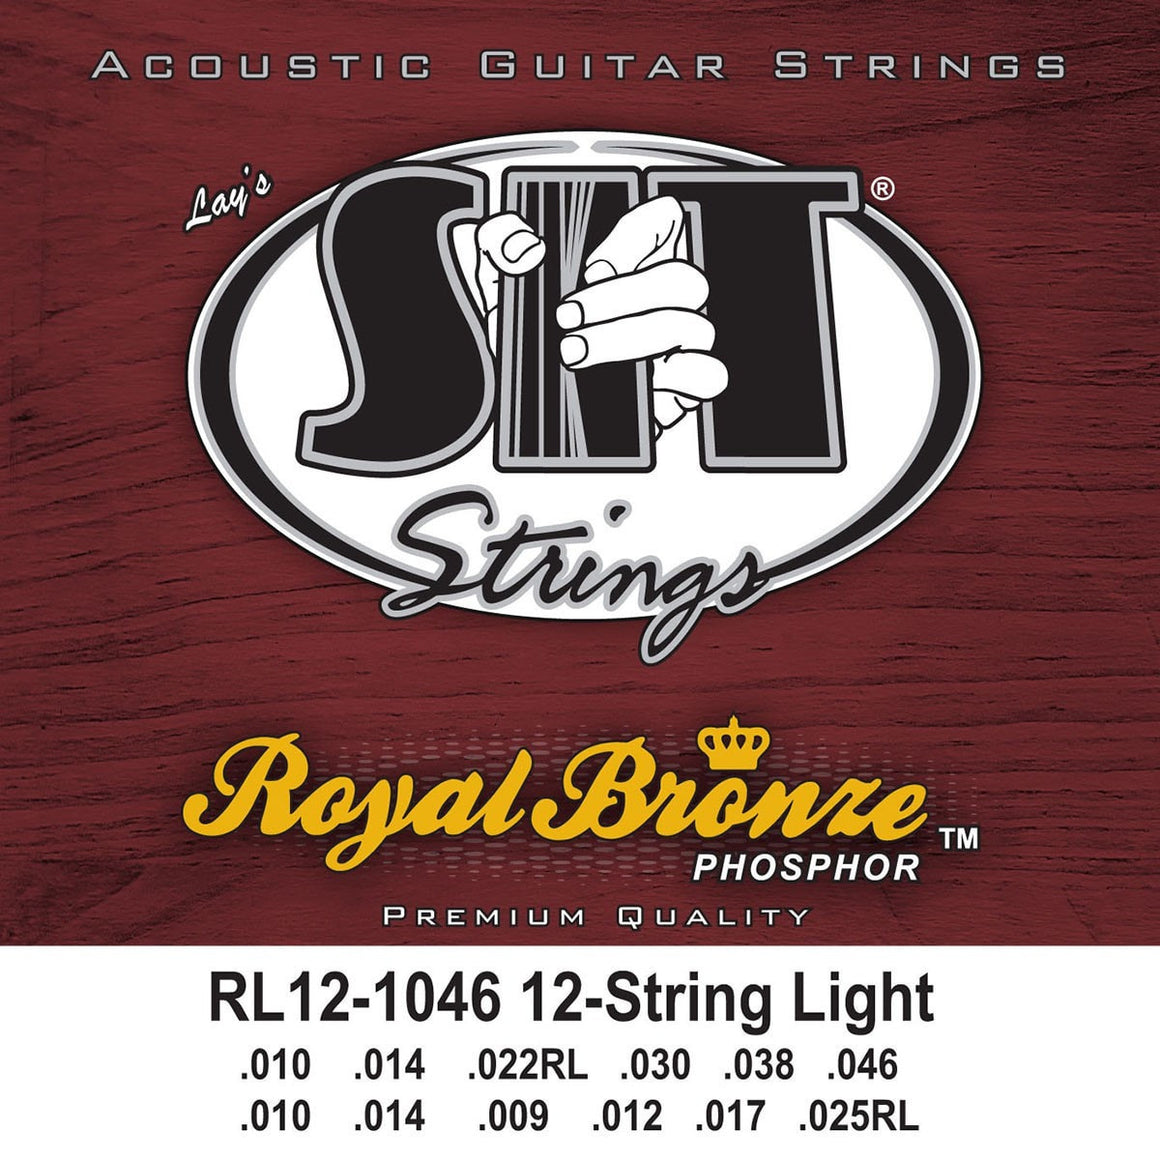 SIT Strings Acoustic Guitar Strings SIT Royal Bronze 12 string Light RL121046 Acoustic Guitar Strings